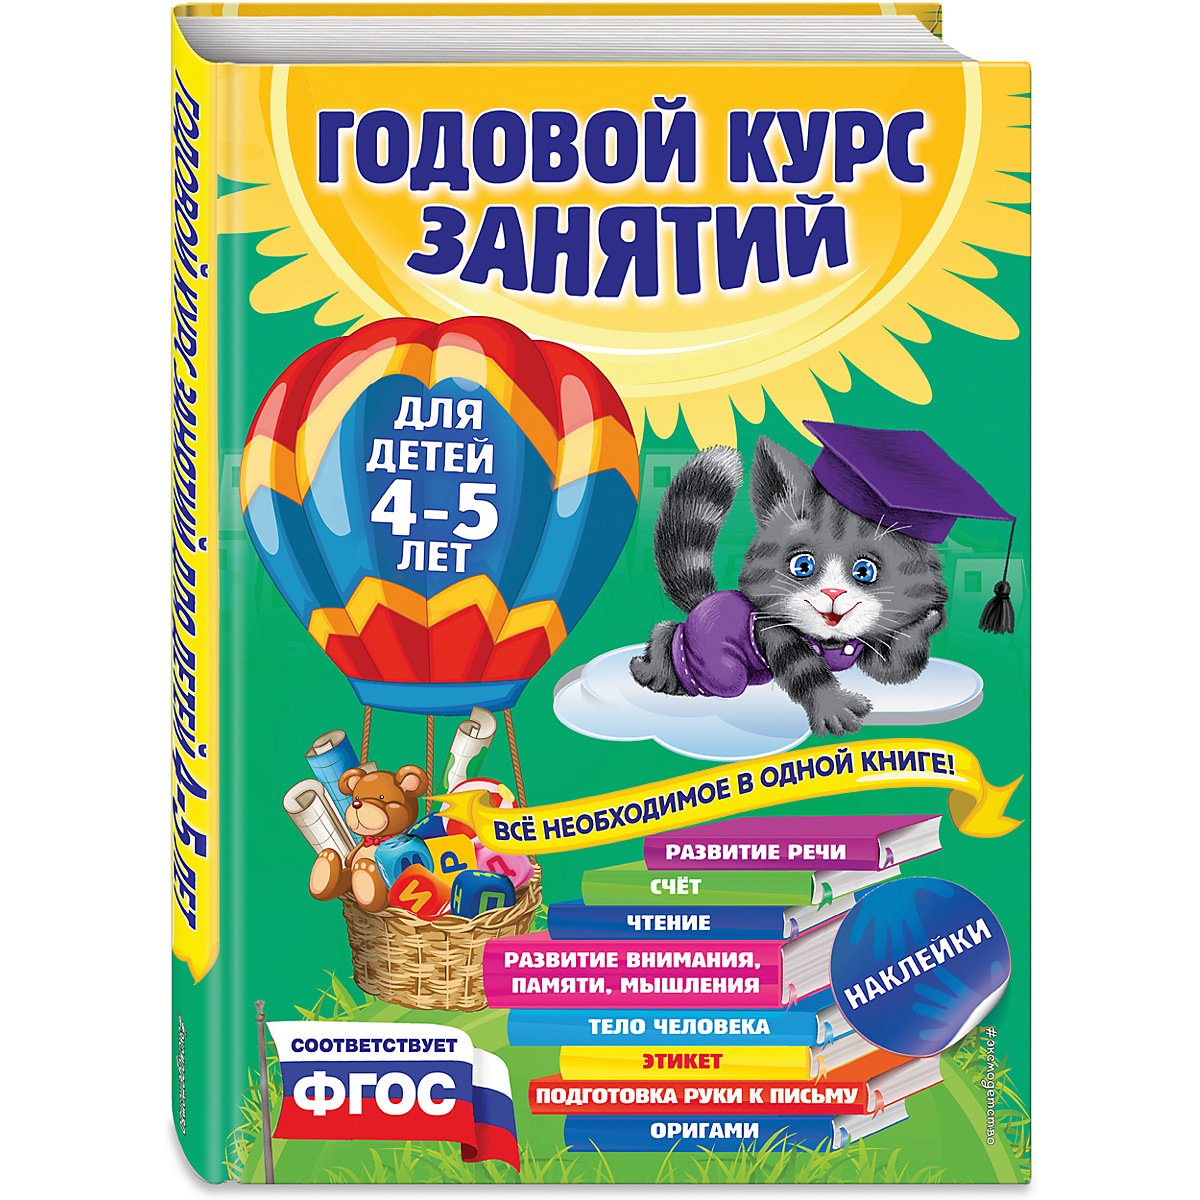 Books EKSMO 4355898 Children Education Encyclopedia Alphabet Dictionary Book For Baby MTpromo